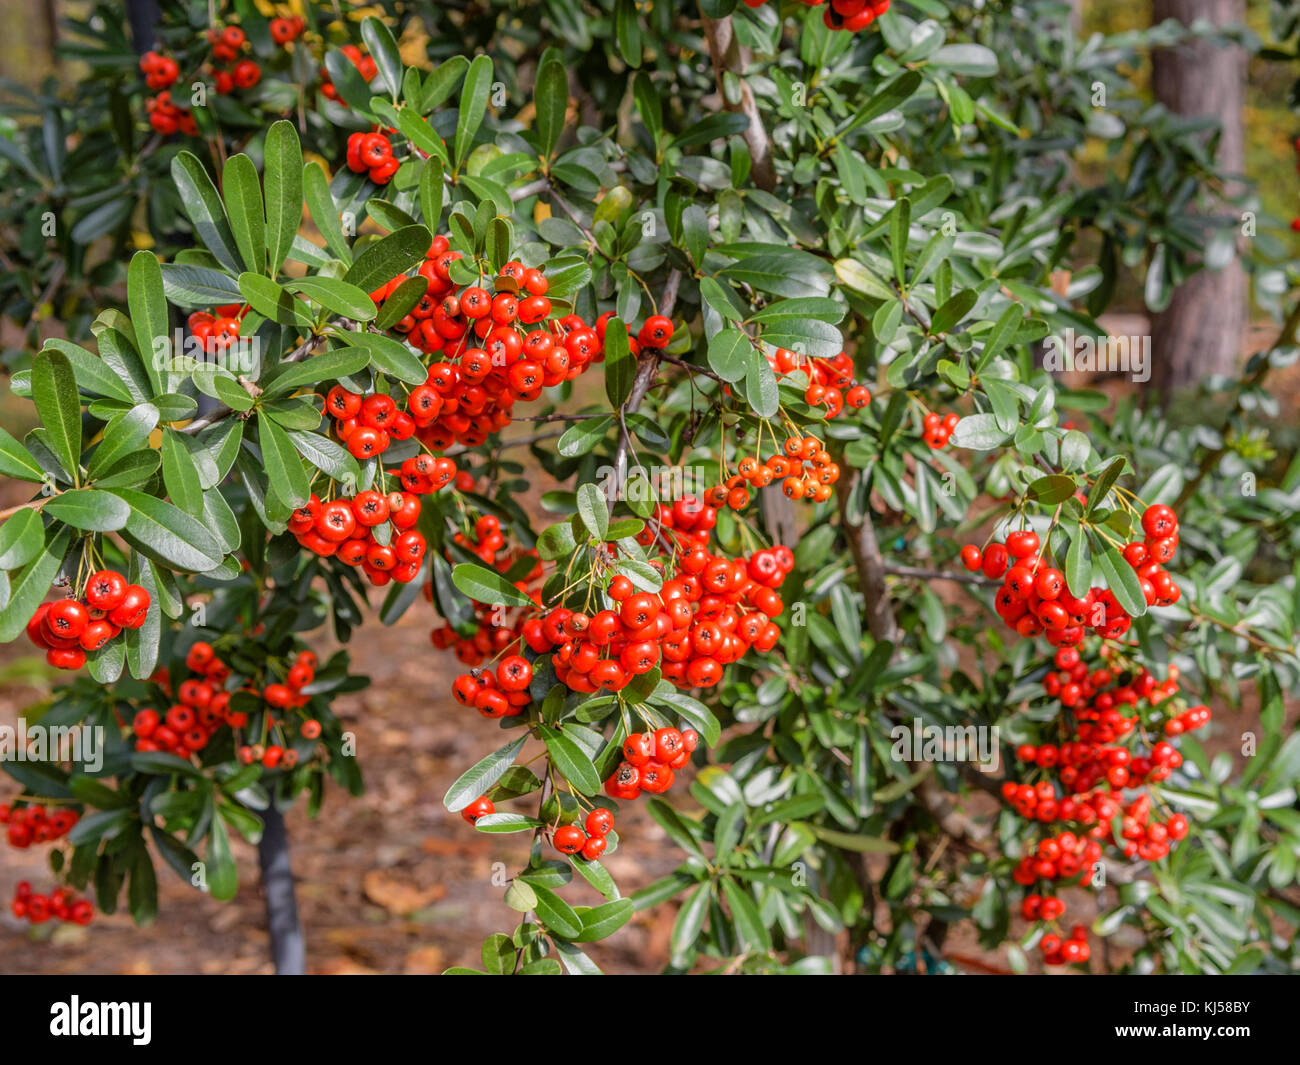 Pyracantha a genus of large, thorny evergreen shrubs in the family Rosaceae, with common names firethorn or pyracantha - Stock Image